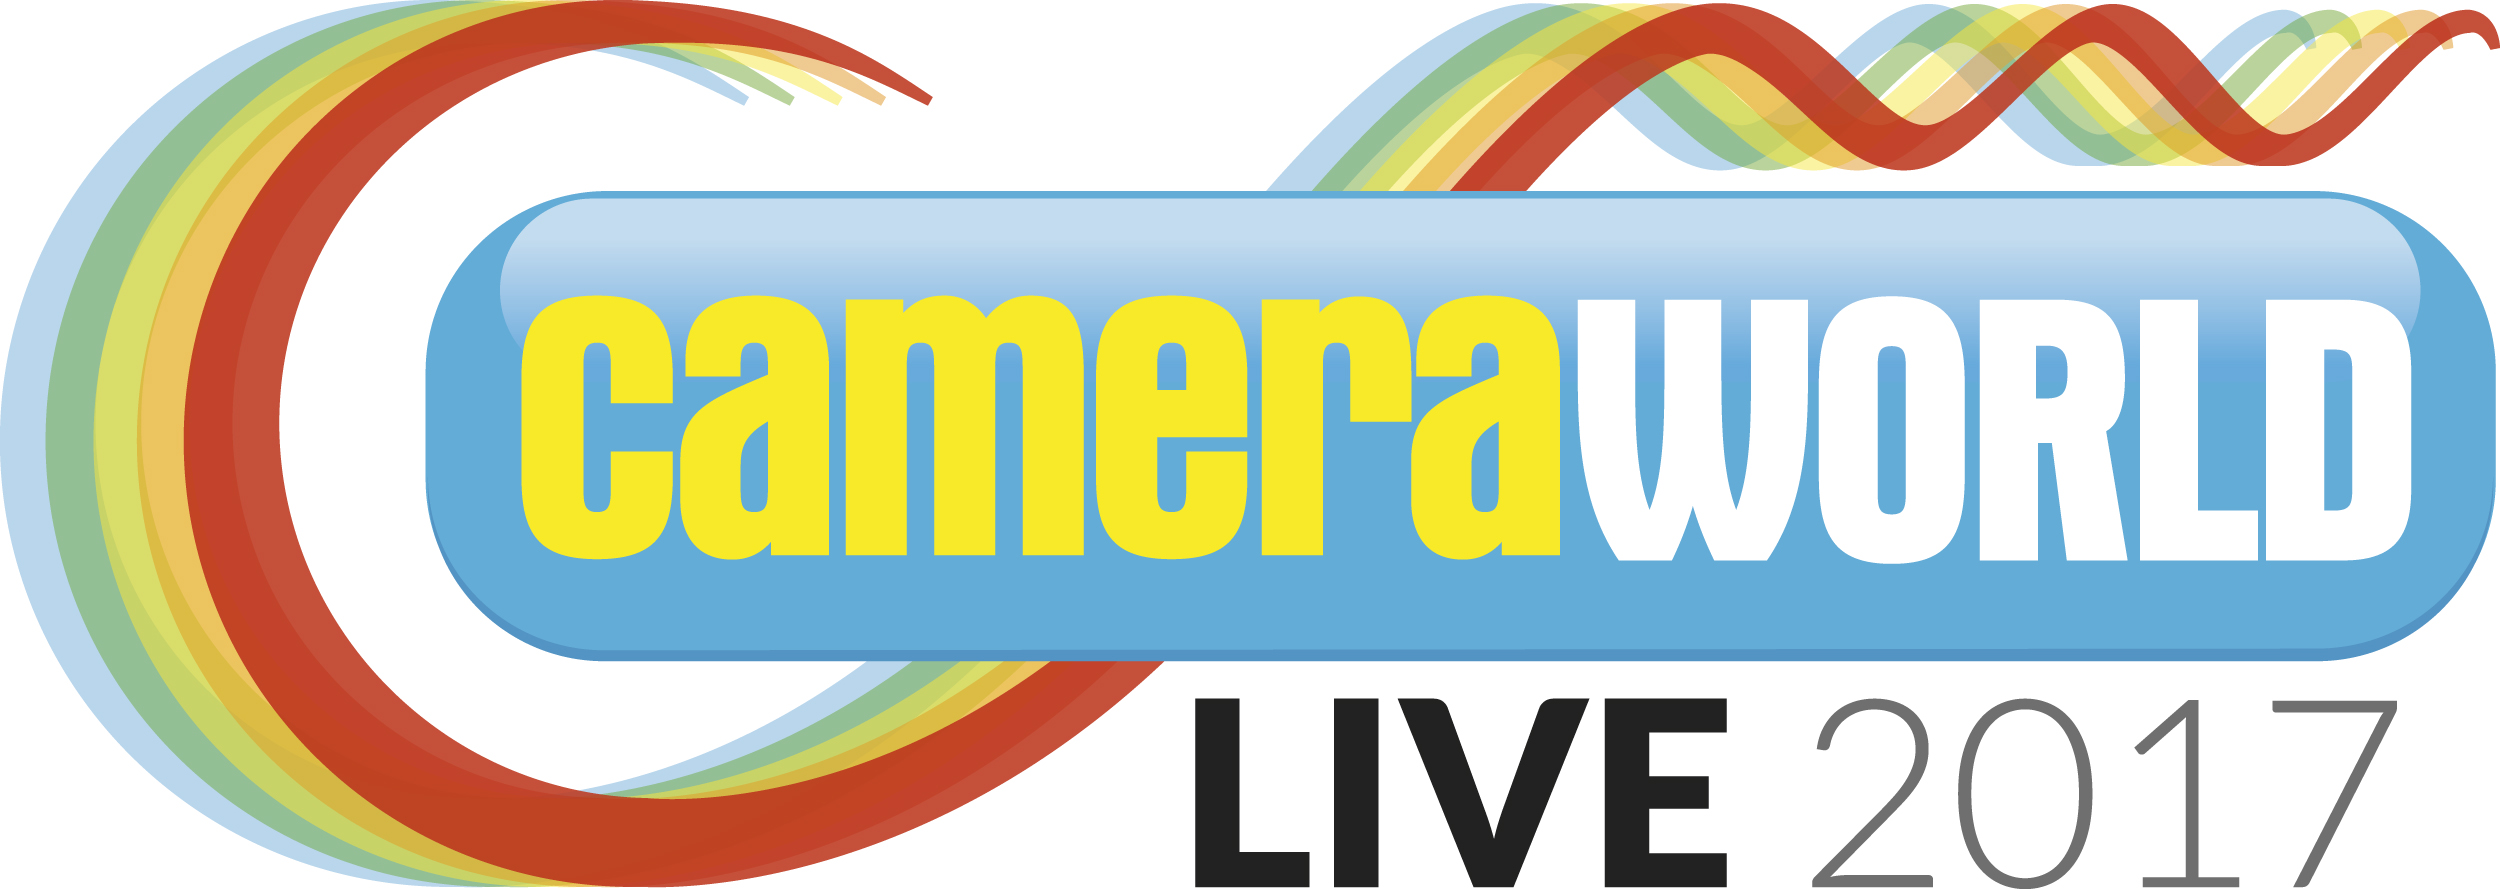 CameraWorld Live 2017 Speaker Photography Photographer Show Exhibition Lineup Jay McLaughlin Olympus